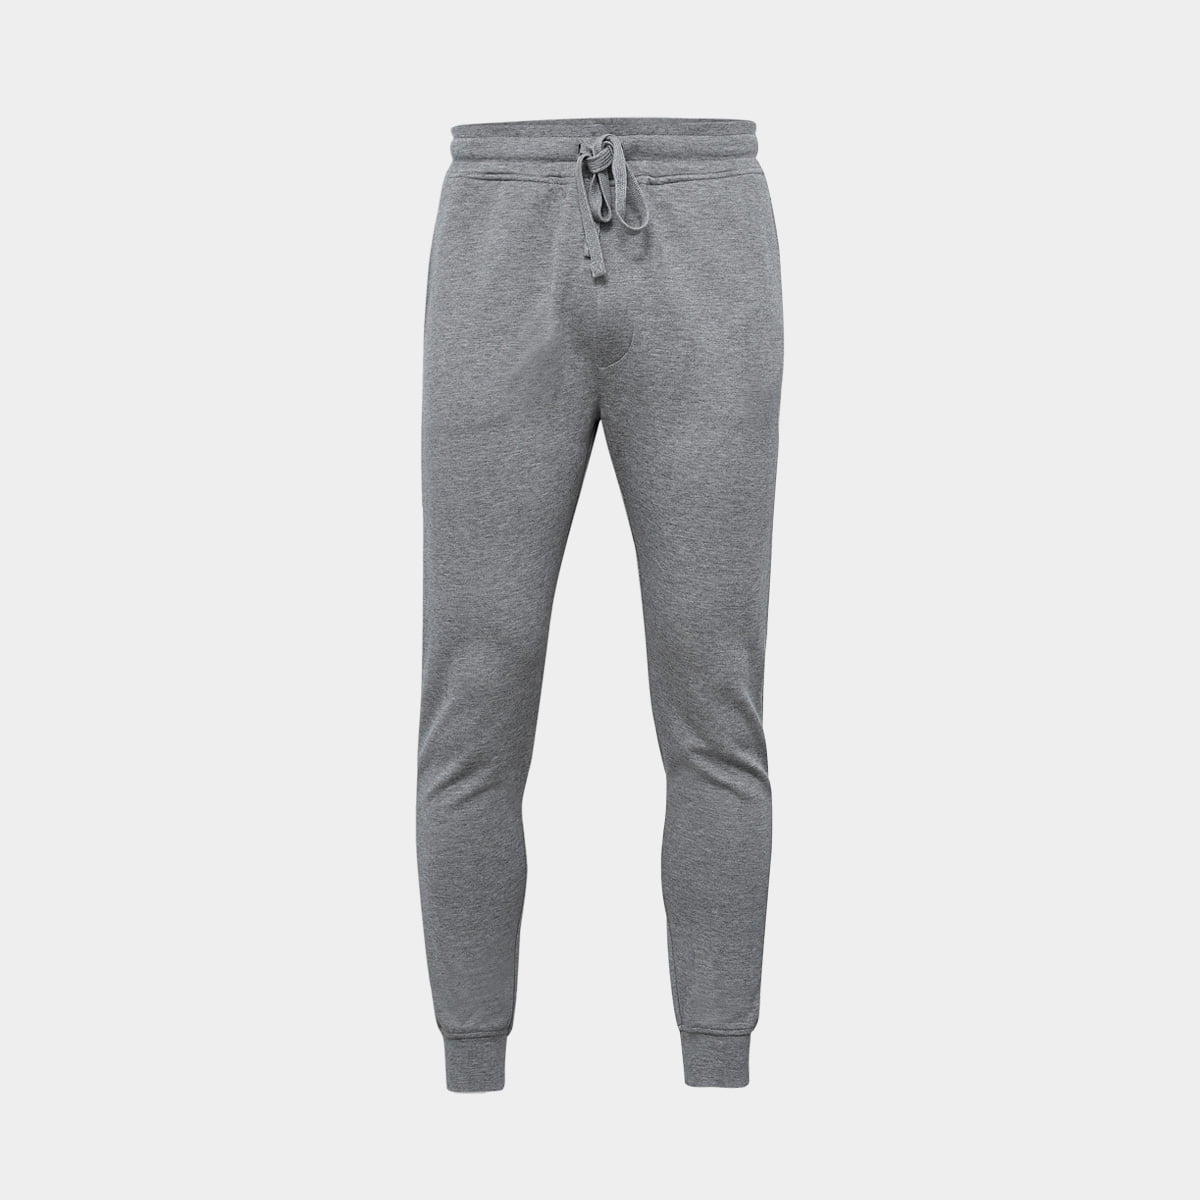 Image of   Grå bambus sweatpants